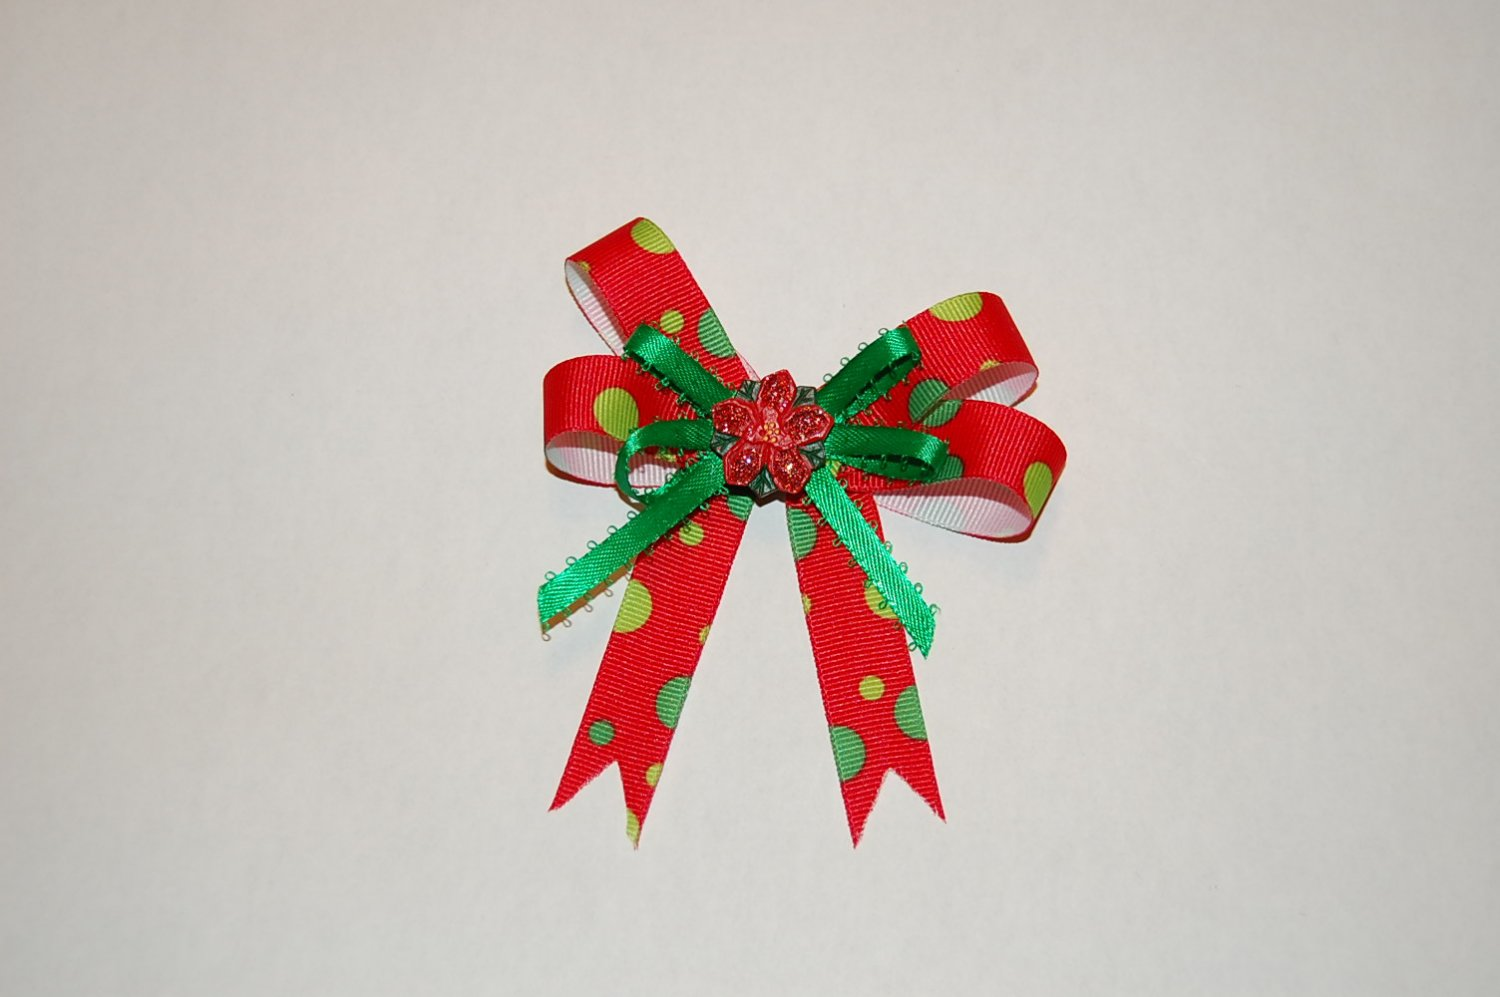 Layered Bow, Red Print/Green, Charm Center, Hair Clip